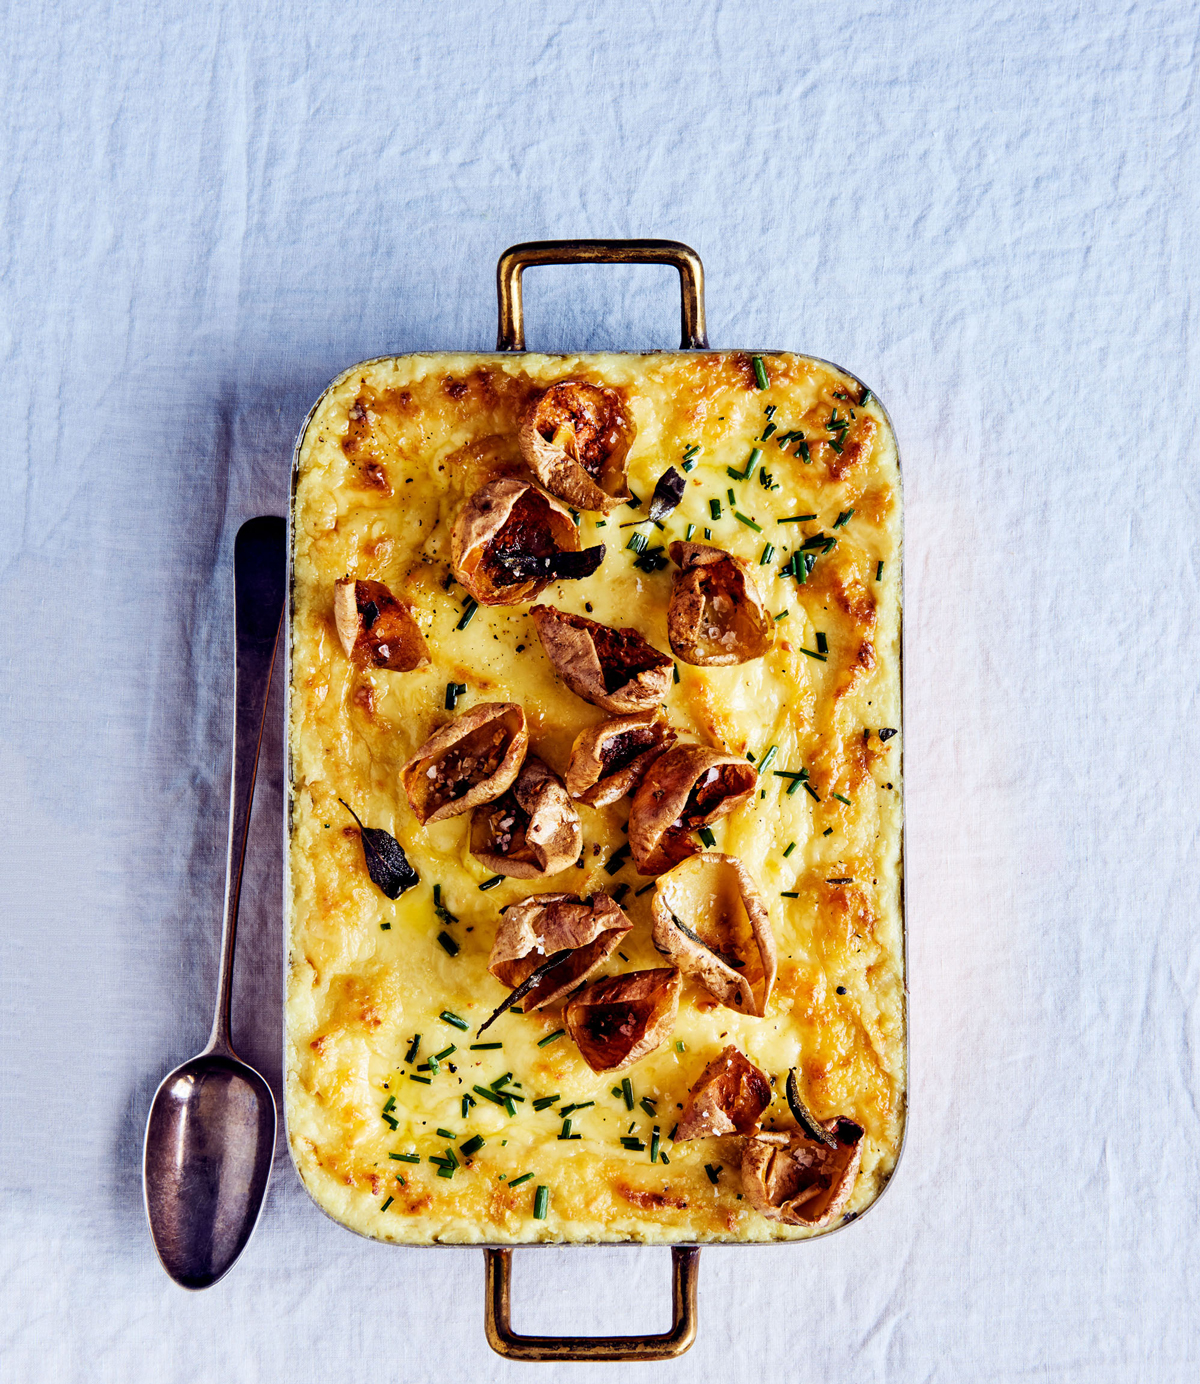 twice-baked potato and raclette casserole